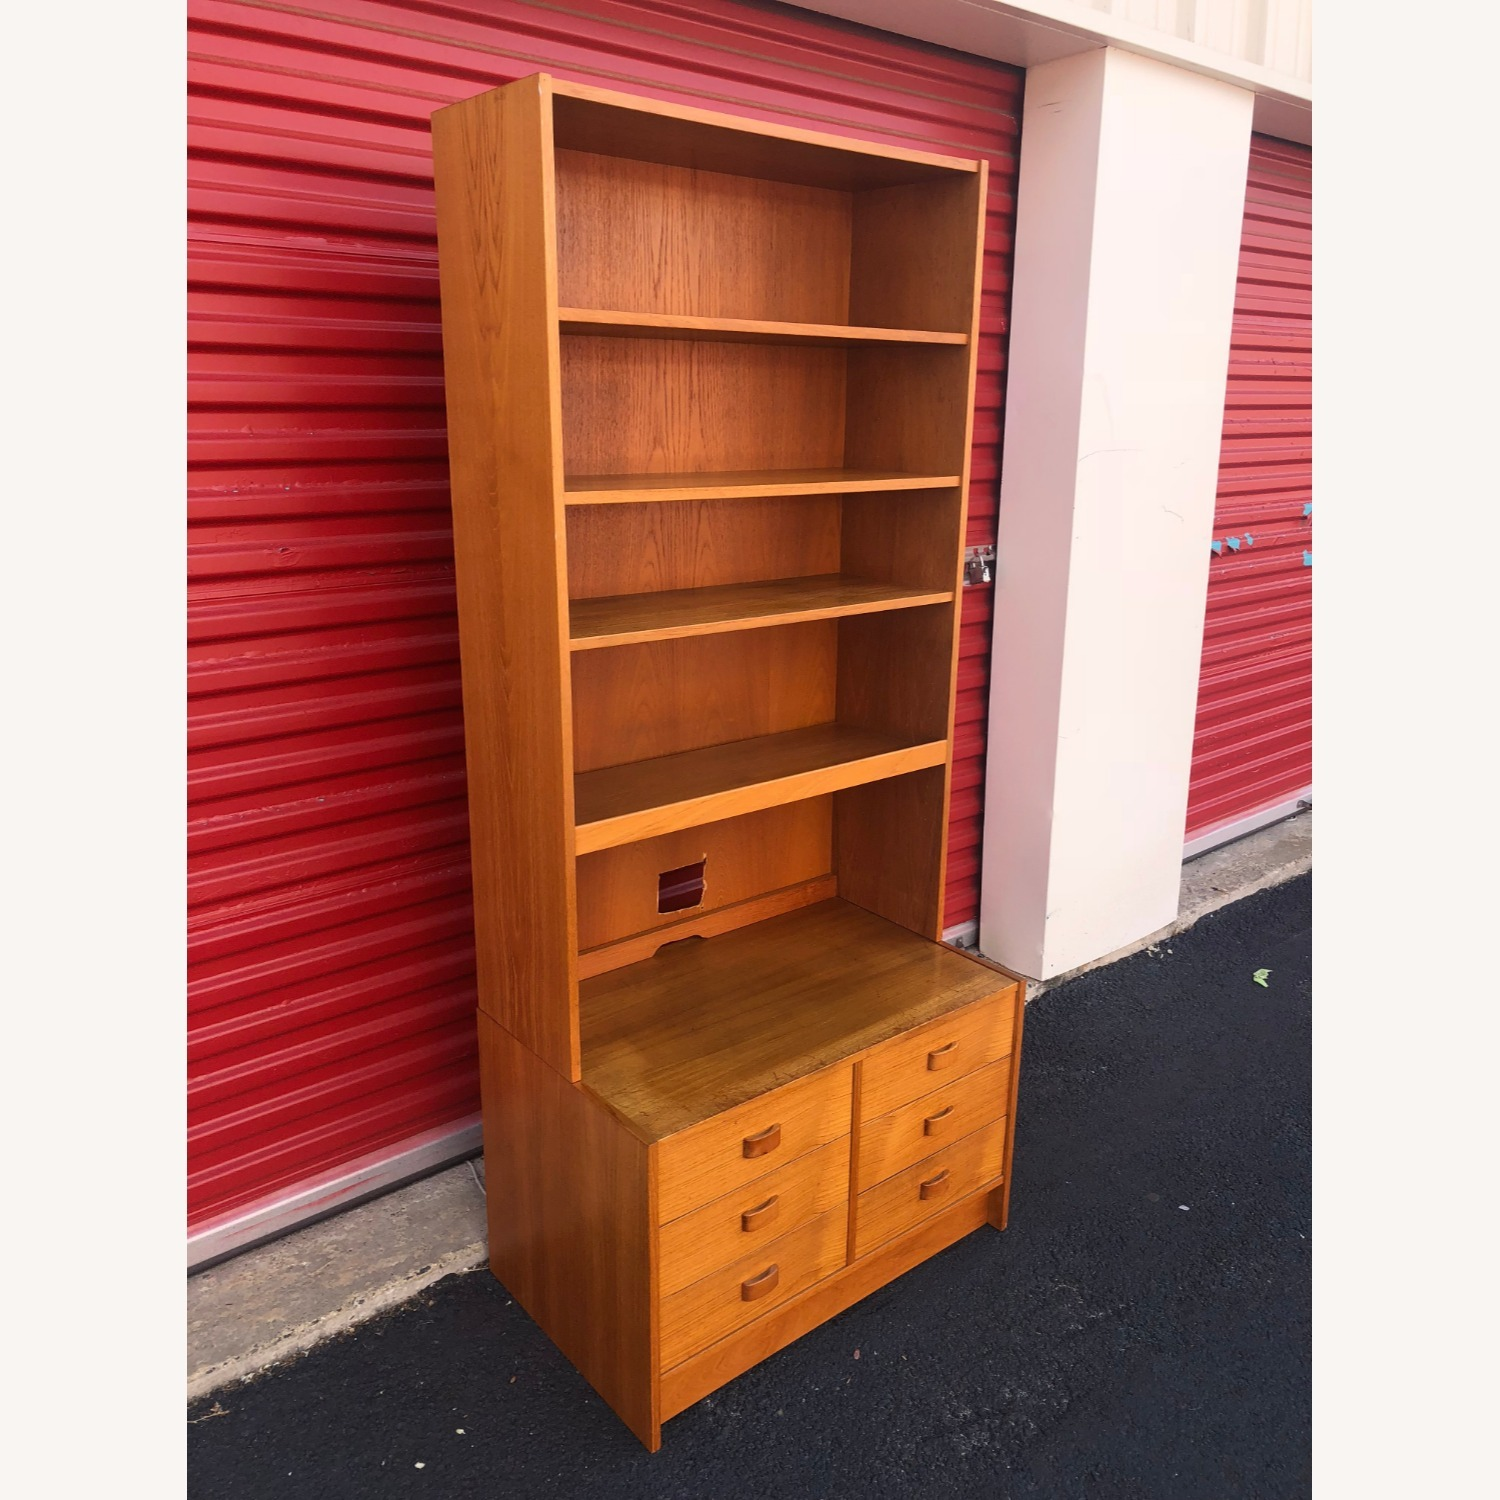 Danish Modern Teak Wall Unit with 6 Drawers - image-3